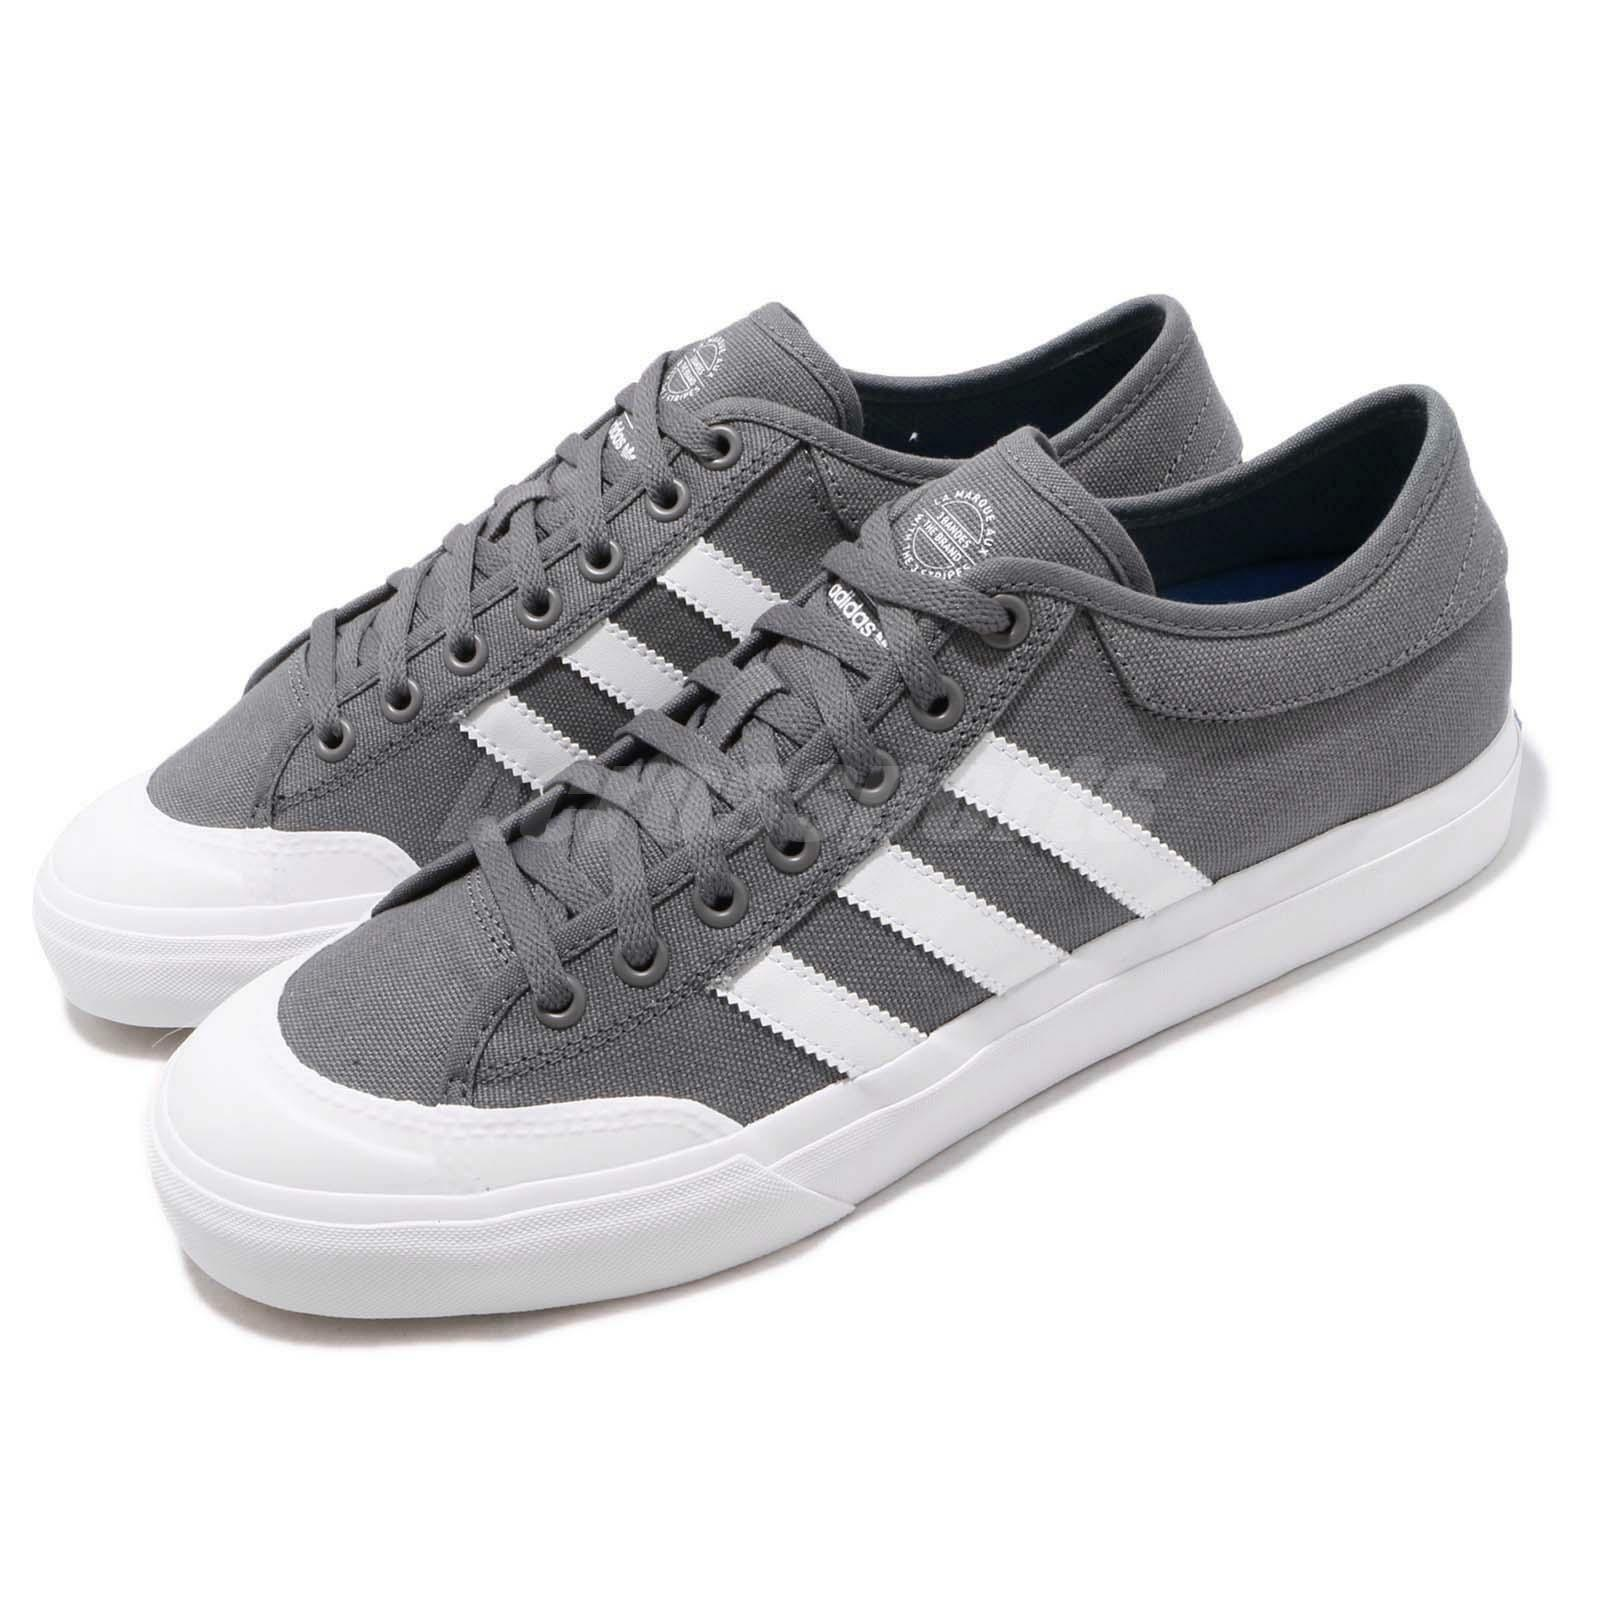 Adidas Originals Matchcourt Grey White bluee Men Casual shoes Sneakers CQ1113